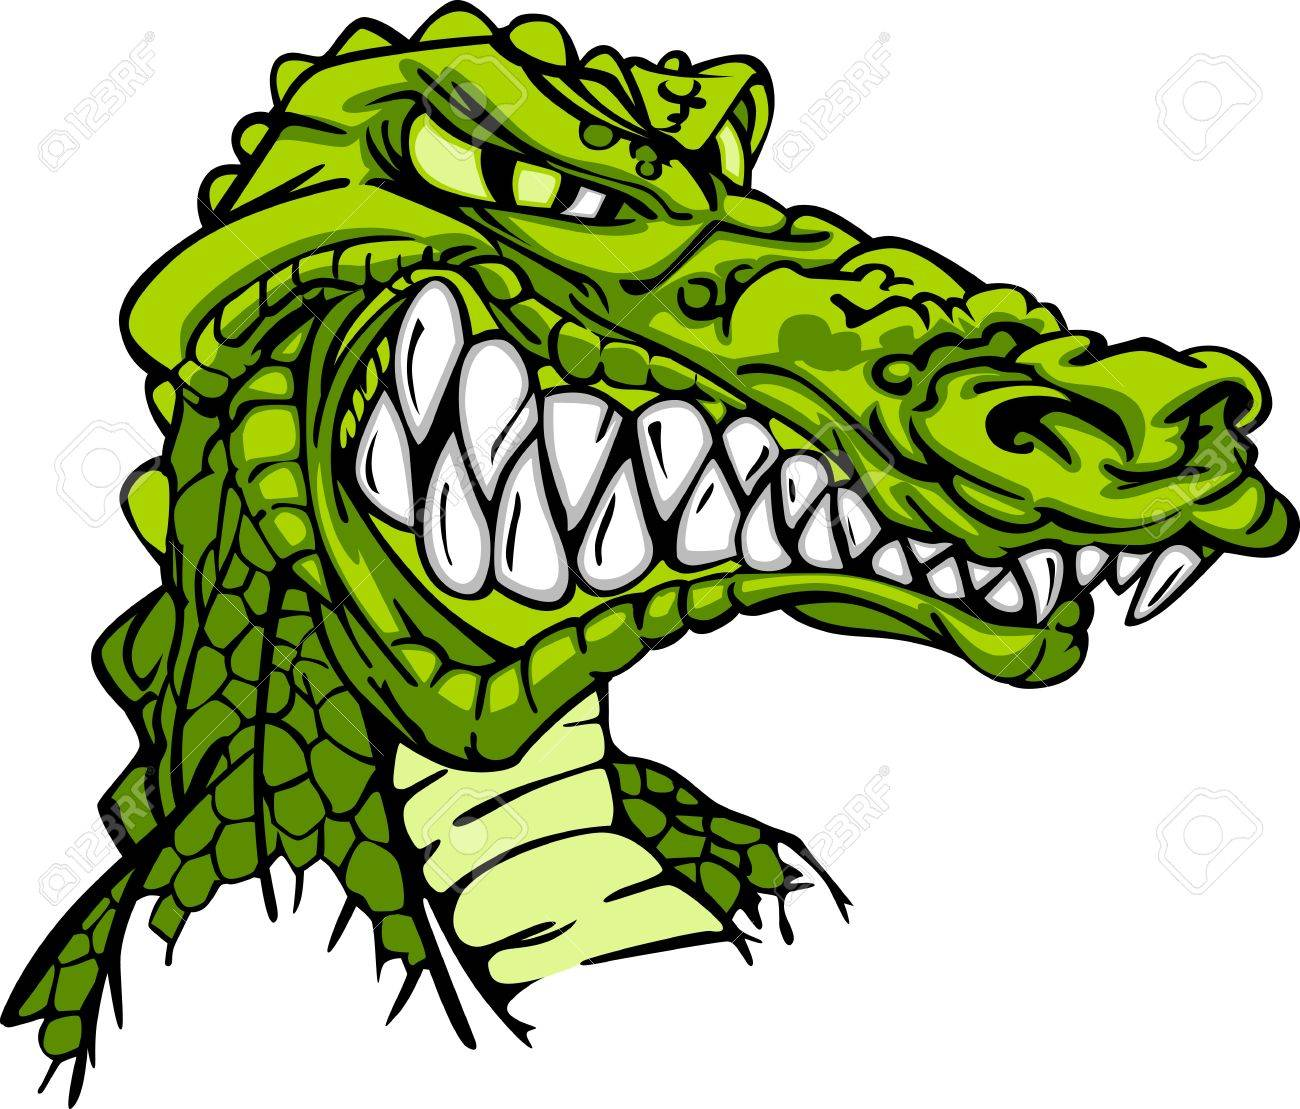 1300x1109 Crocodile Clipart Alligator Mascot